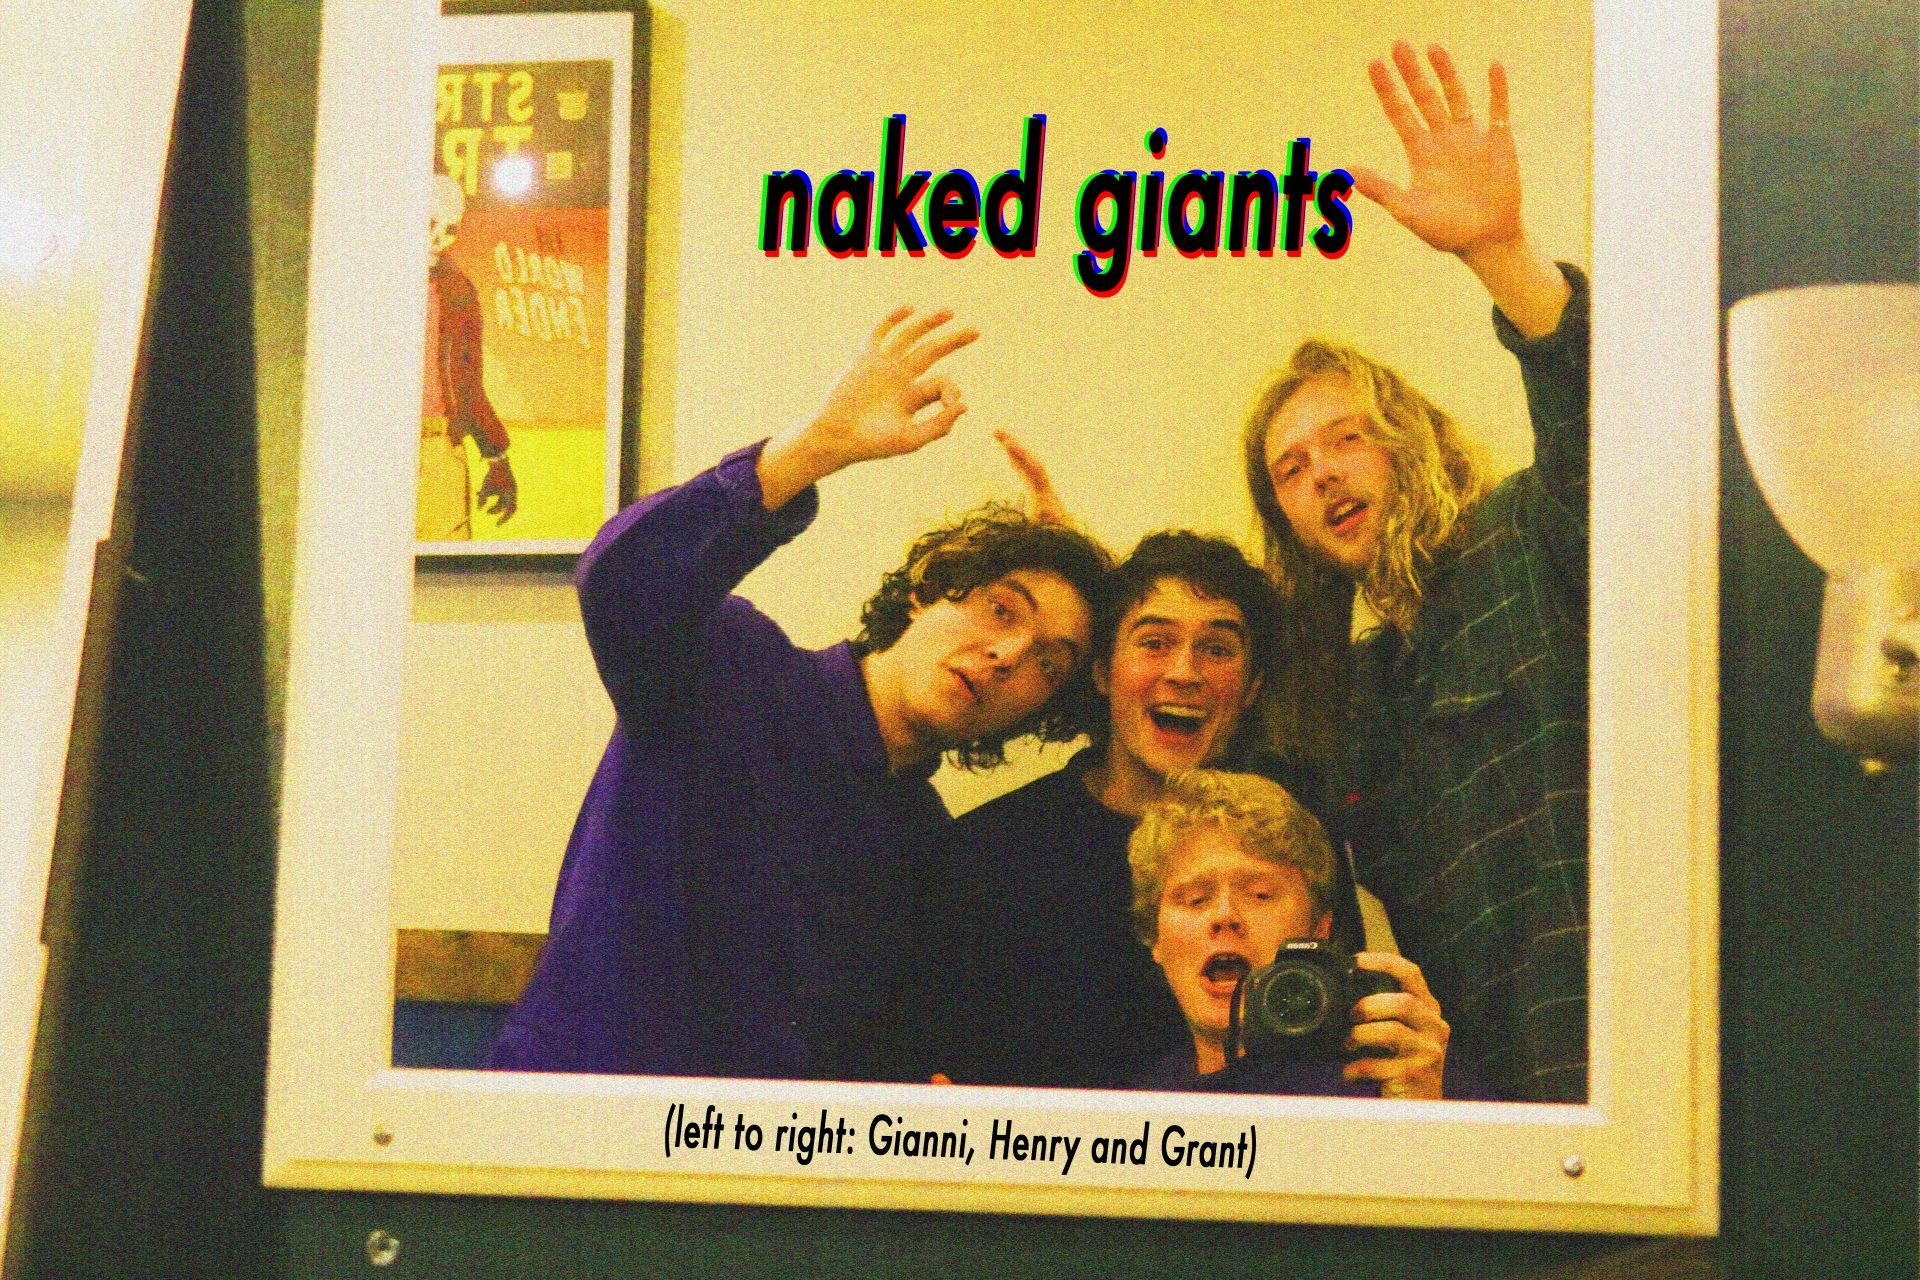 The photo is of the three young male band members for Naked Giants posing in front of a Green Room mirror with a young male journalist taking the photo.